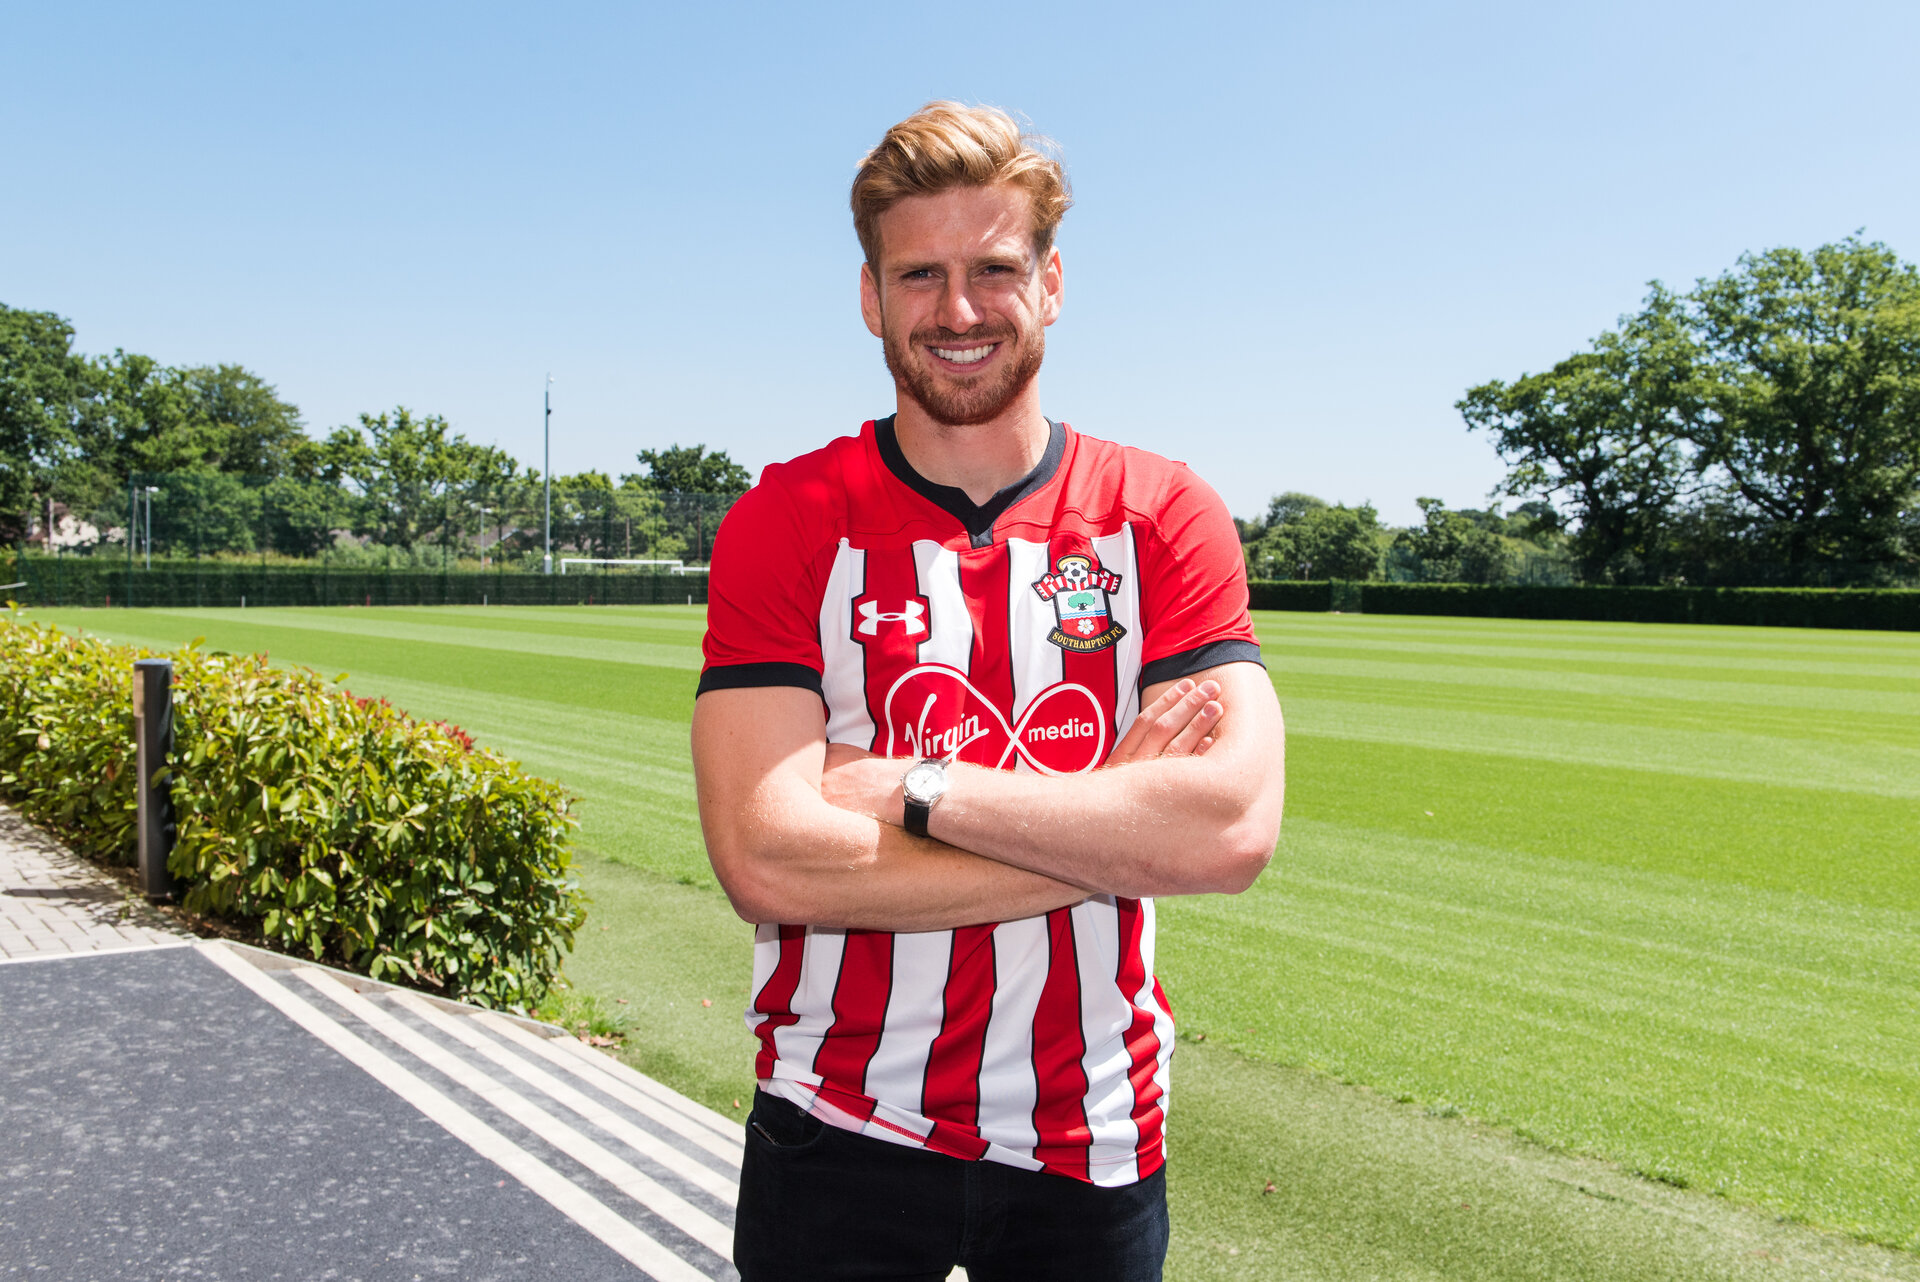 SOUTHAMPTON, ENGLAND - JUNE 26: Southampton FC Sign Stuart Armstrong from Celtic on June 26, 2018 pictured at Staplewood Complex in Southampton, England. (Photo by James Bridle - Southampton FC/Southampton FC via Getty Images)